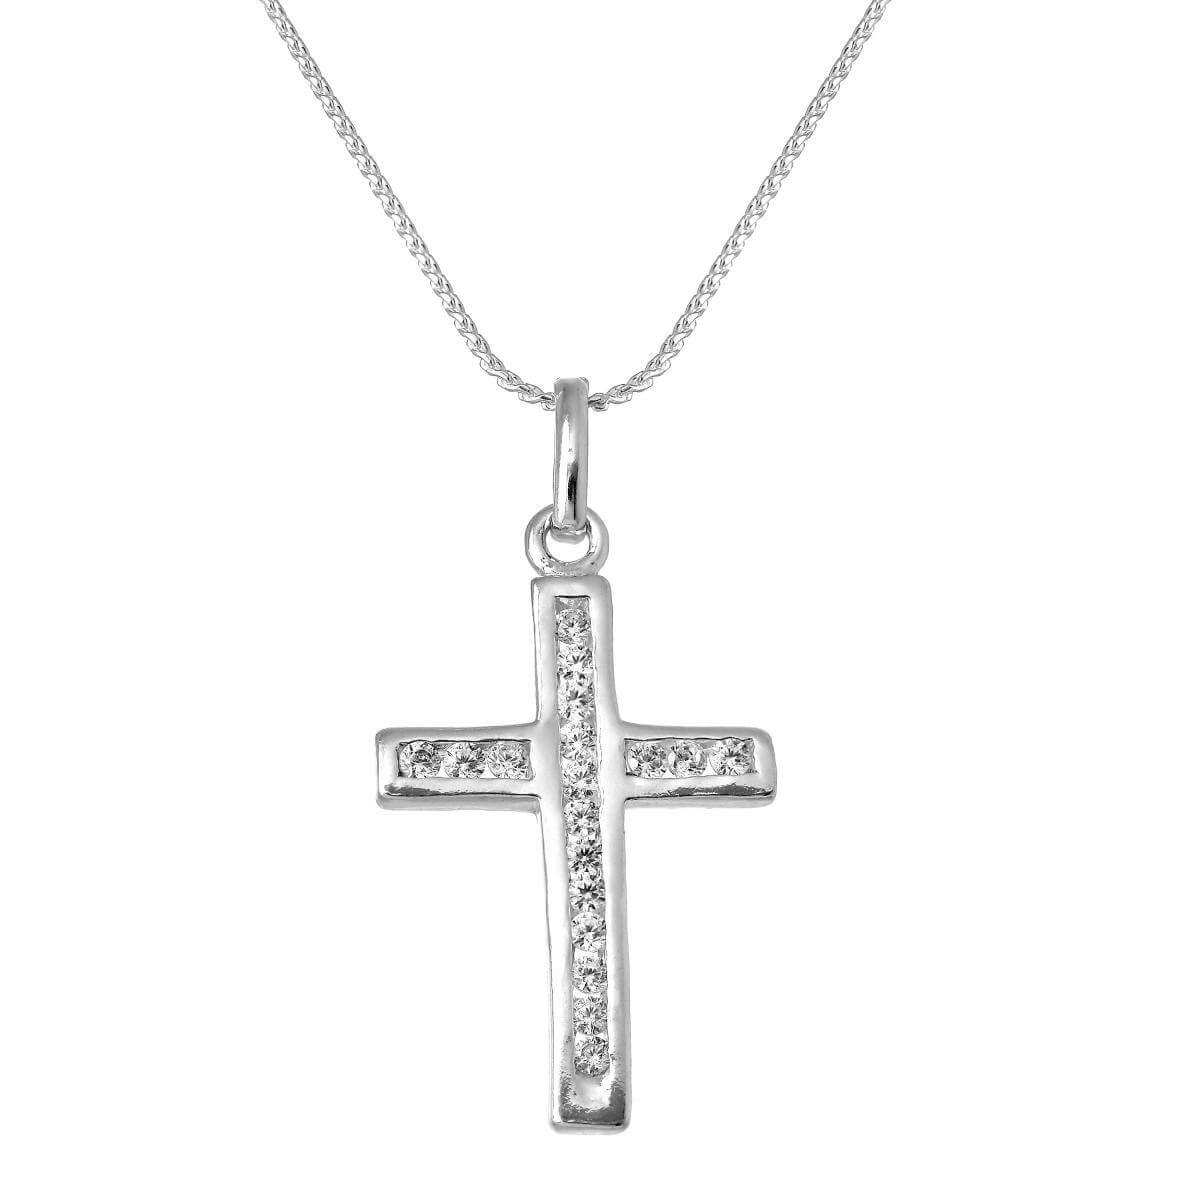 Sterling Silver & CZ Crystal Cross Pendant Necklace 16 - 22 Inches